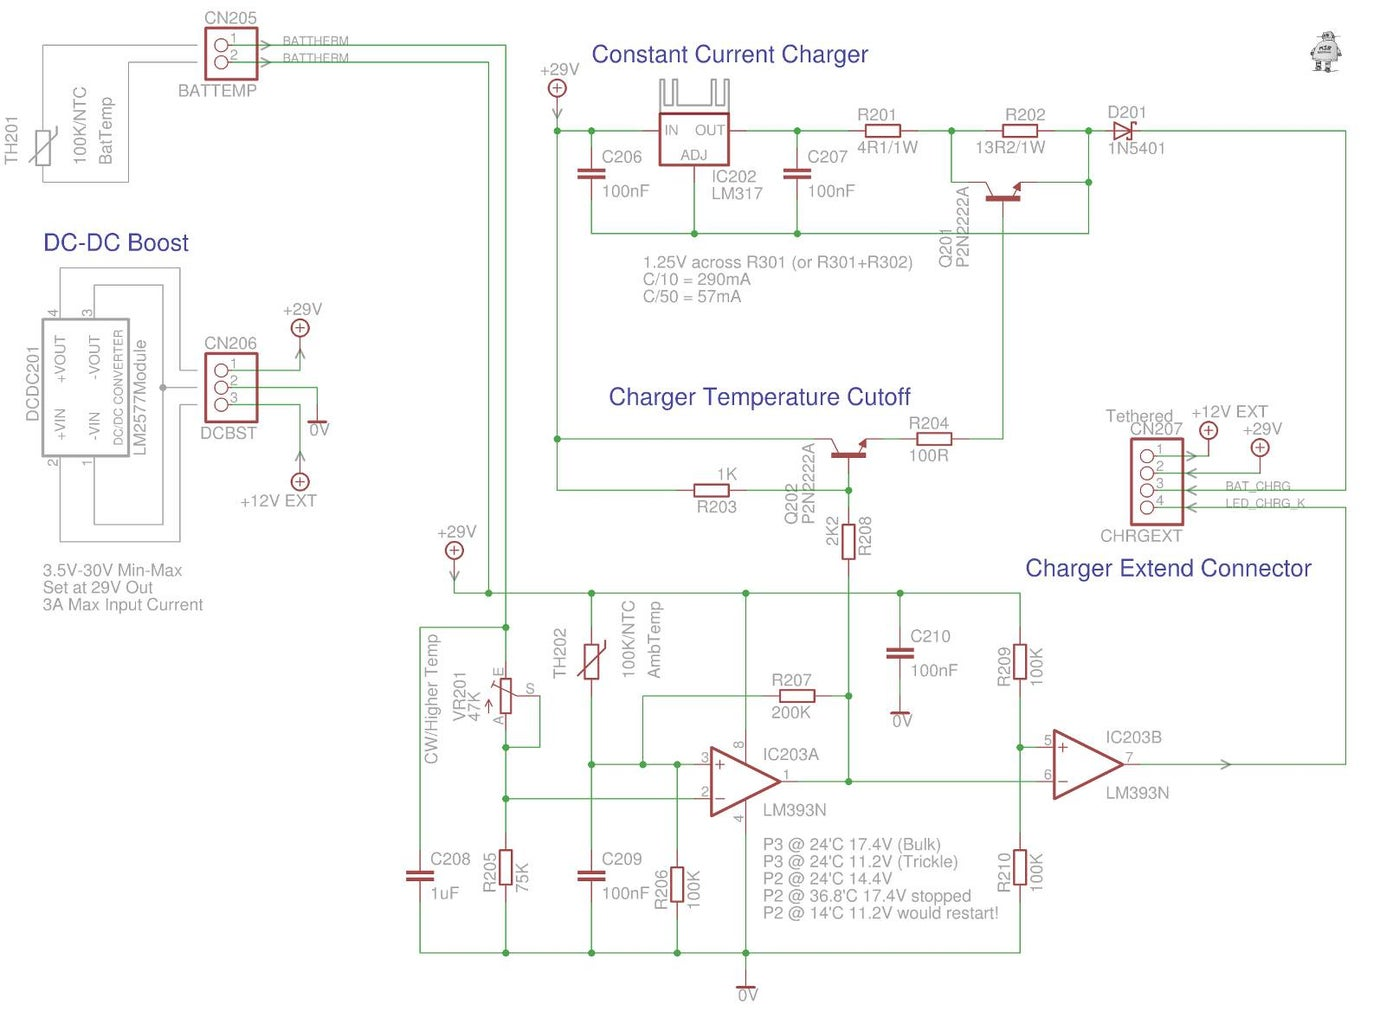 DC-DC Boost Charger/Current Limiter